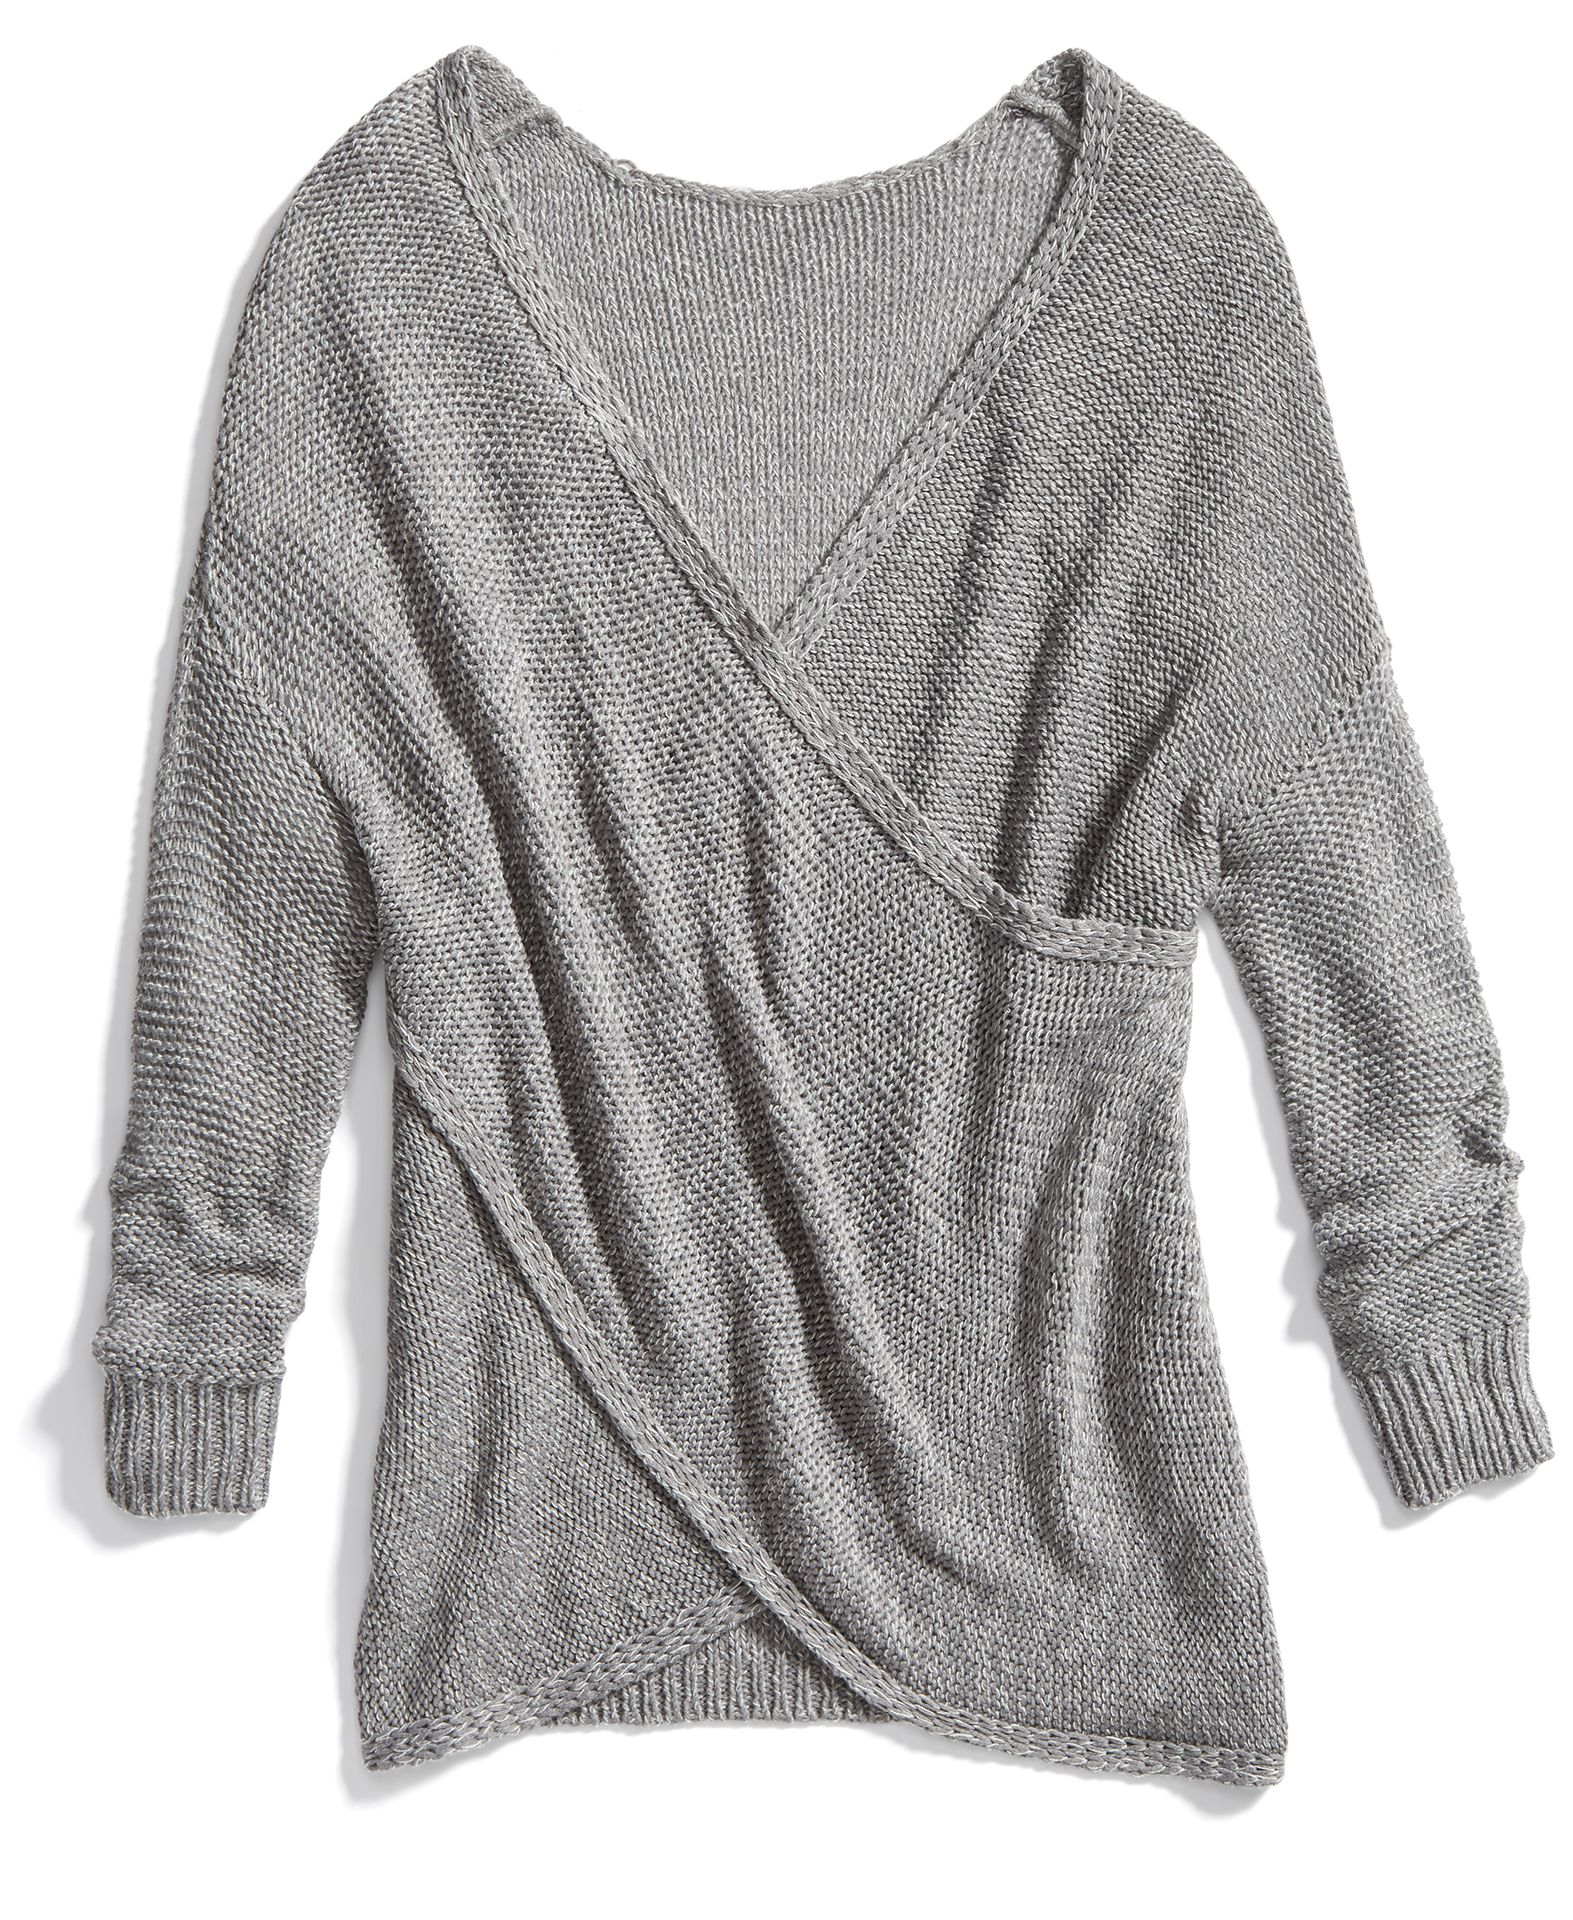 cdfa9bd8bc Stitch Fix Winter Essentials  Try a cross-front sweater to switch up your  sweater game.